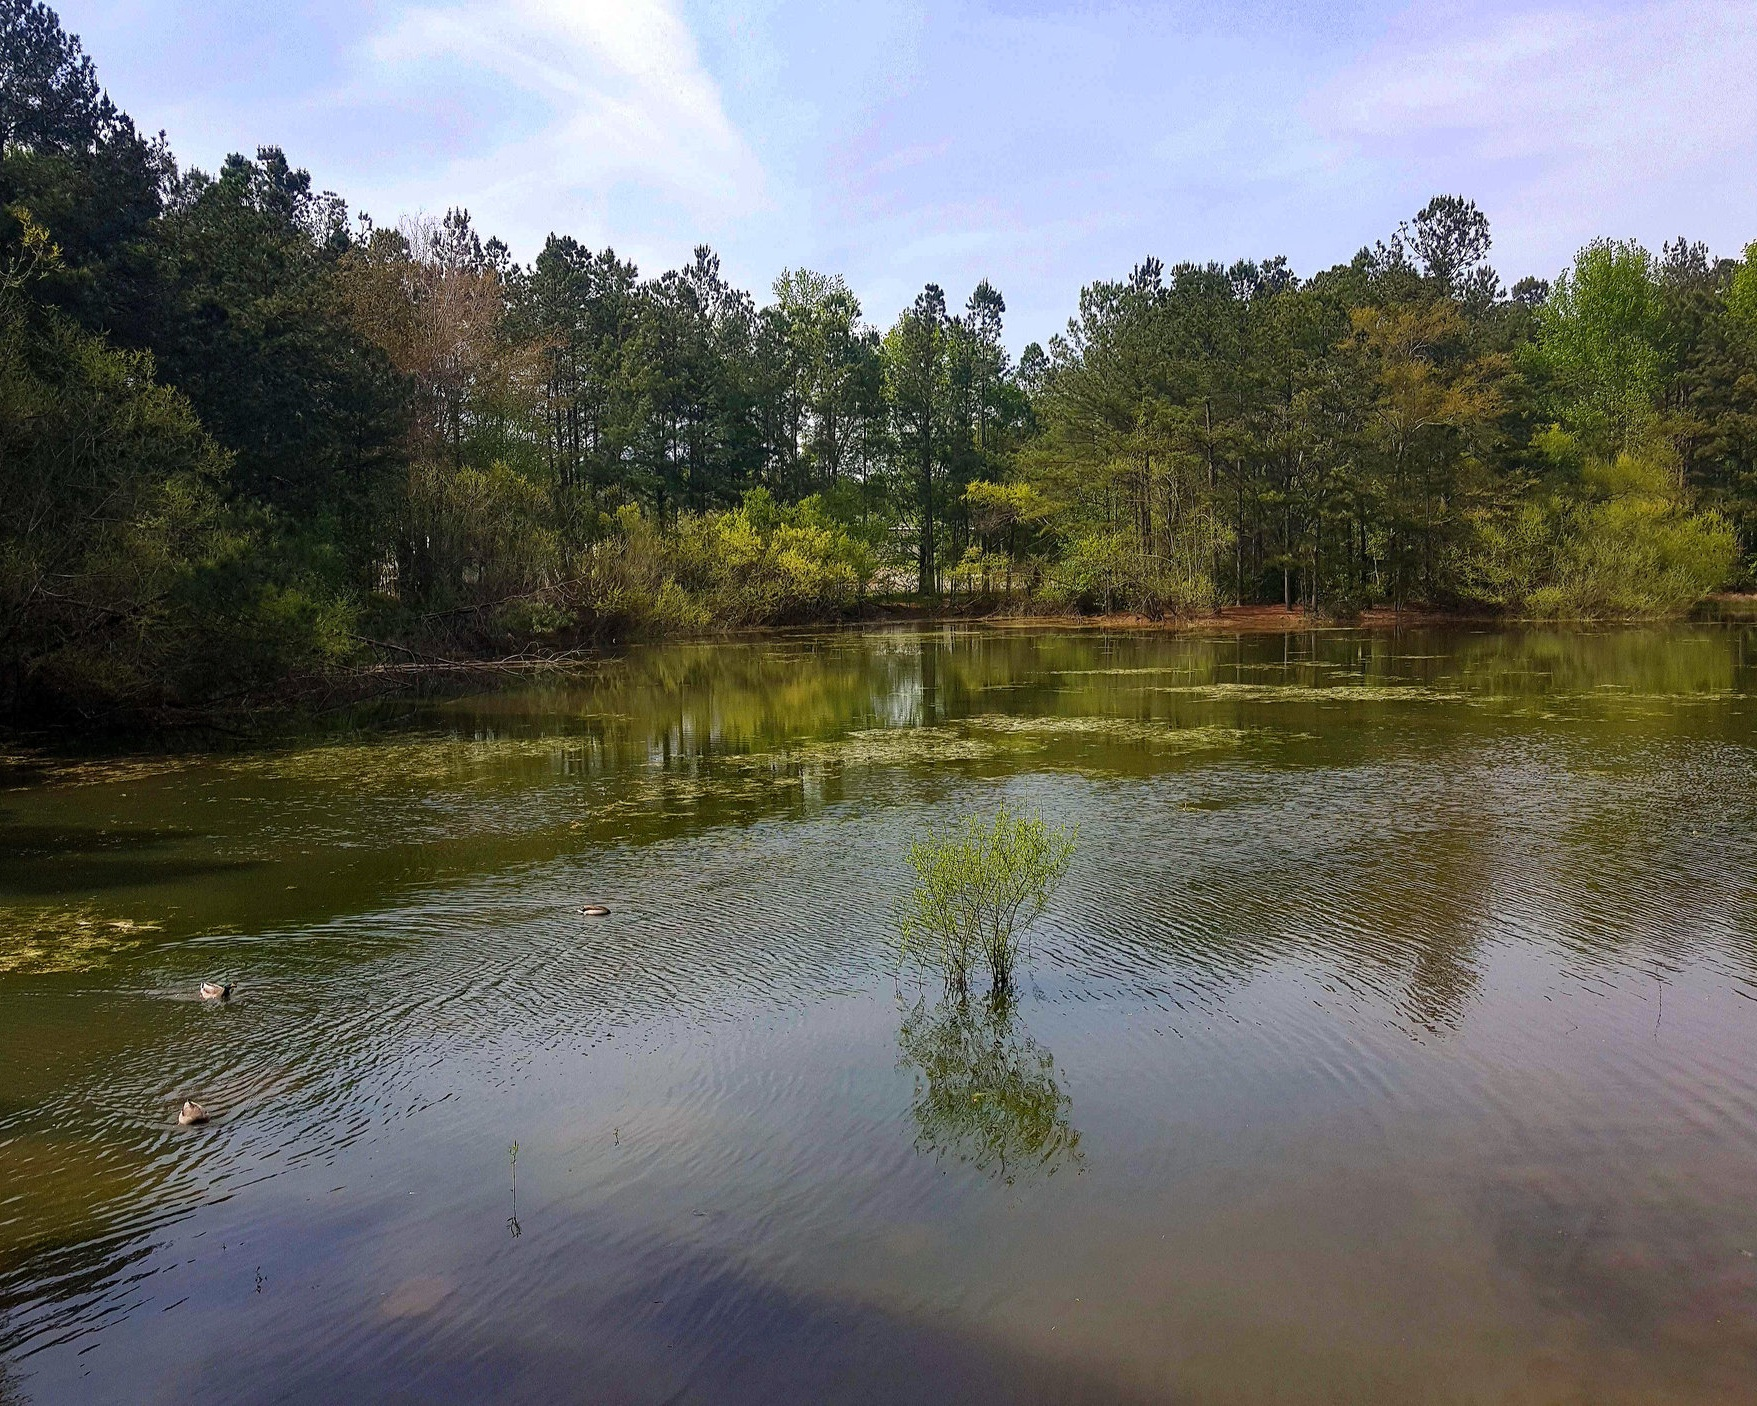 Carolina Bay Nature Resort - This isn't any ordinary city park. Housed within is a natural wetland that has seen minimal improvements. What you will find is maximum tranquility. So, take a walk on the trail, spend some time with the wildlife and just enjoy the peace and quiet of the woods.